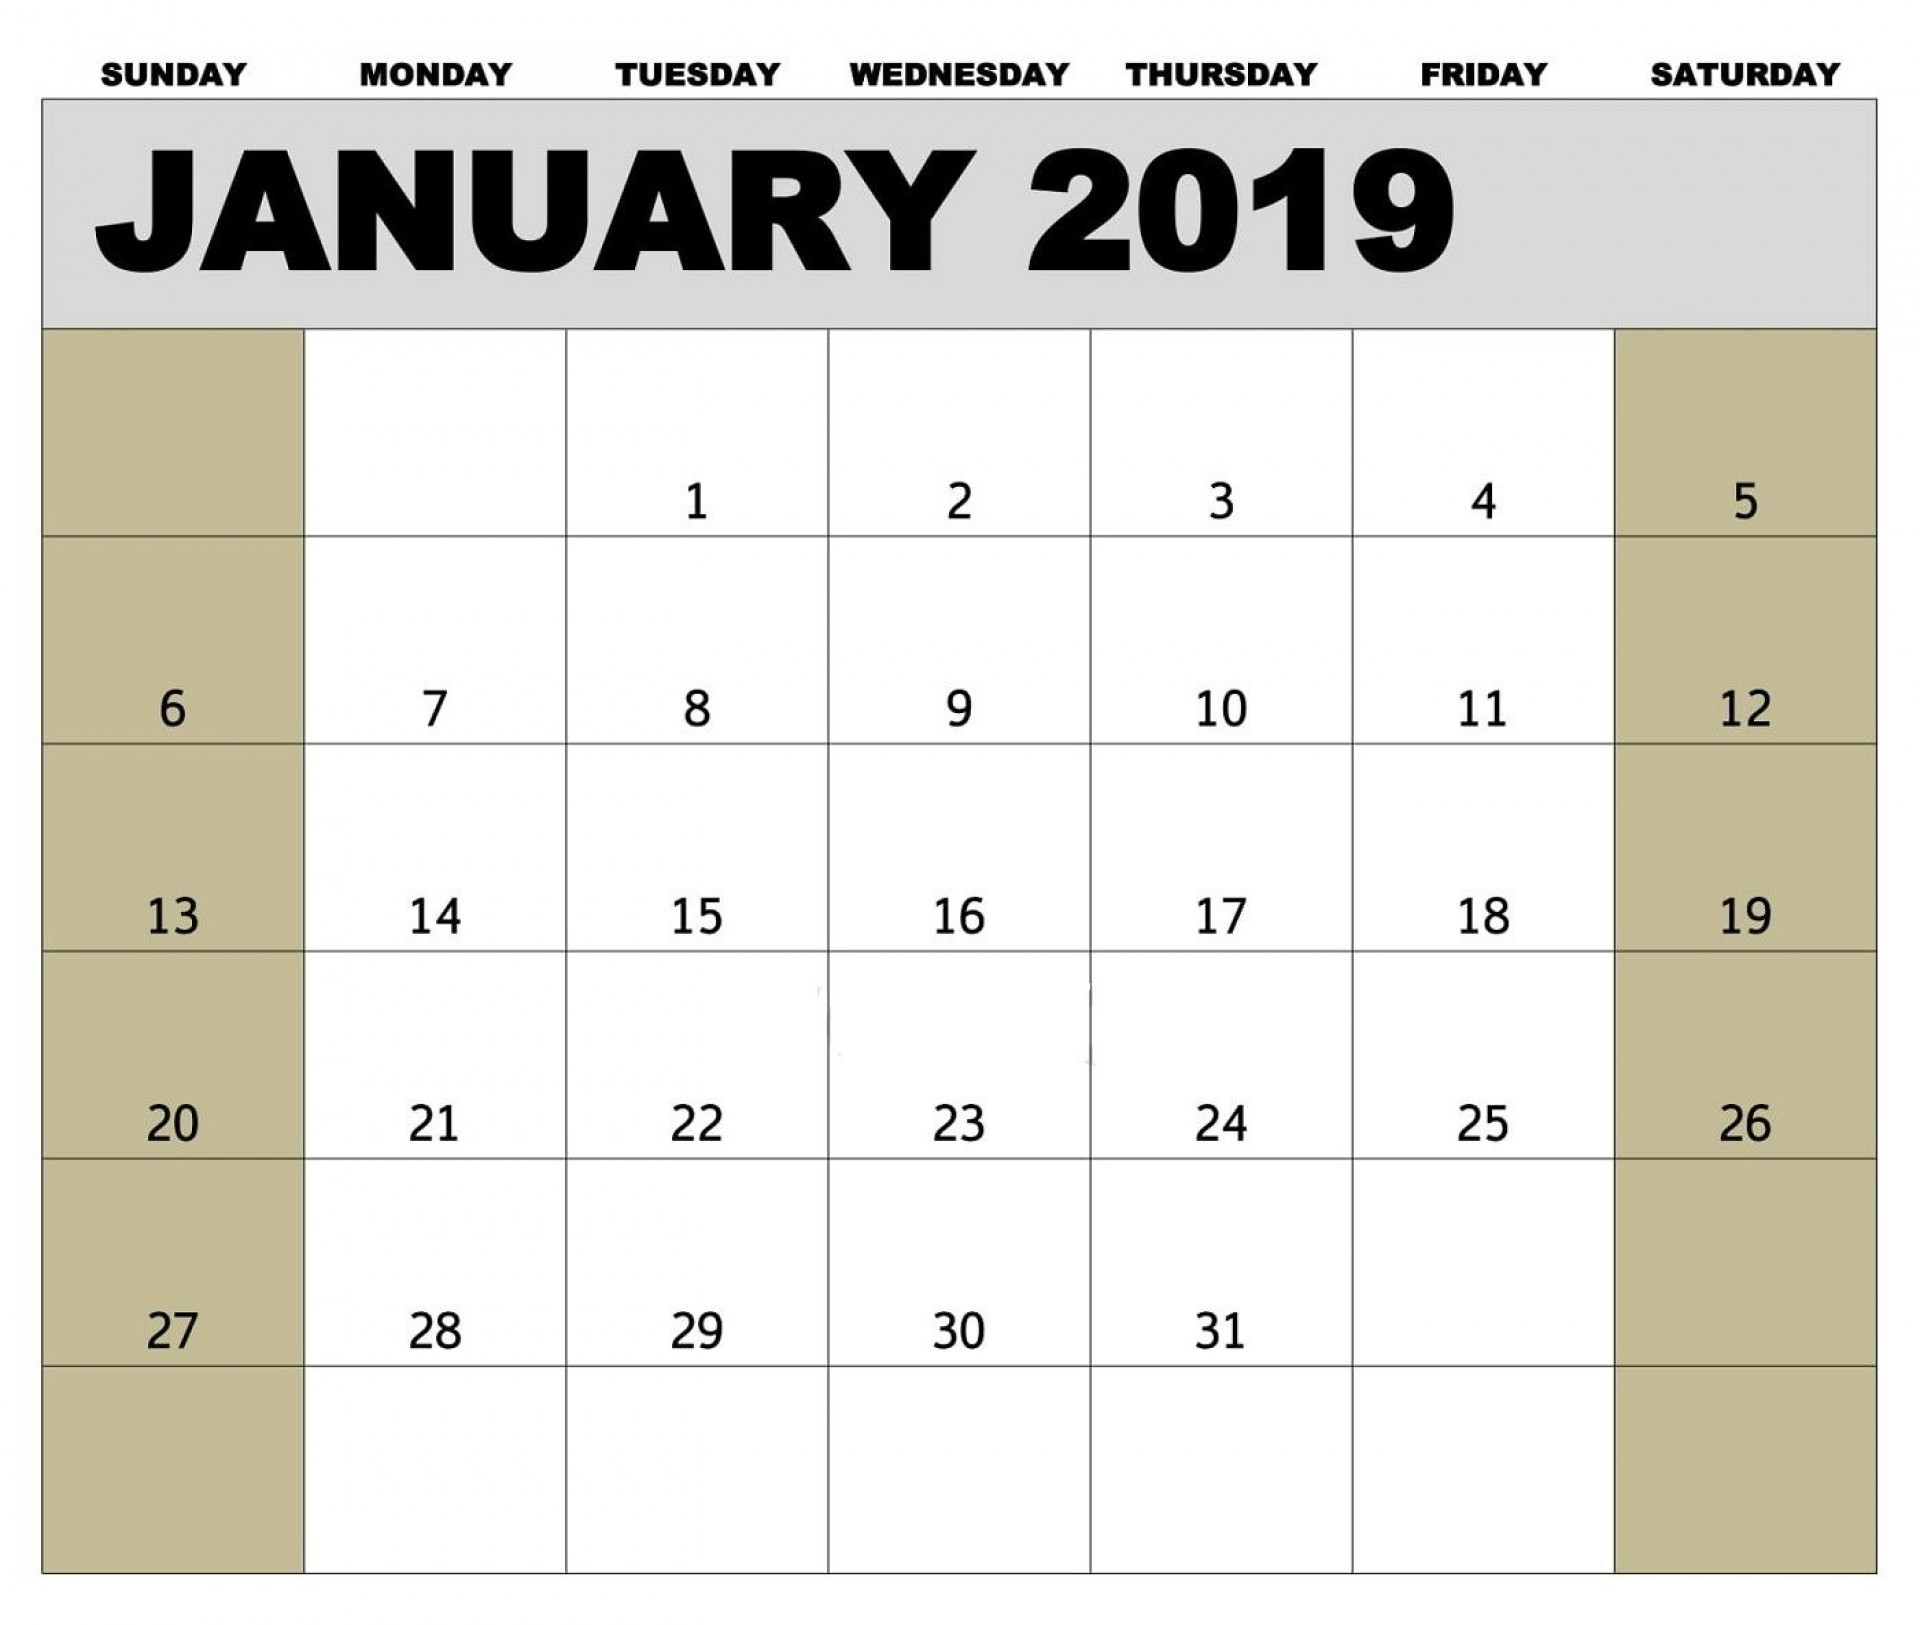 Remarkable Biweekly Pay Schedule Template Ideas Payroll-2020 Bi Weekly Schedule Template Excel